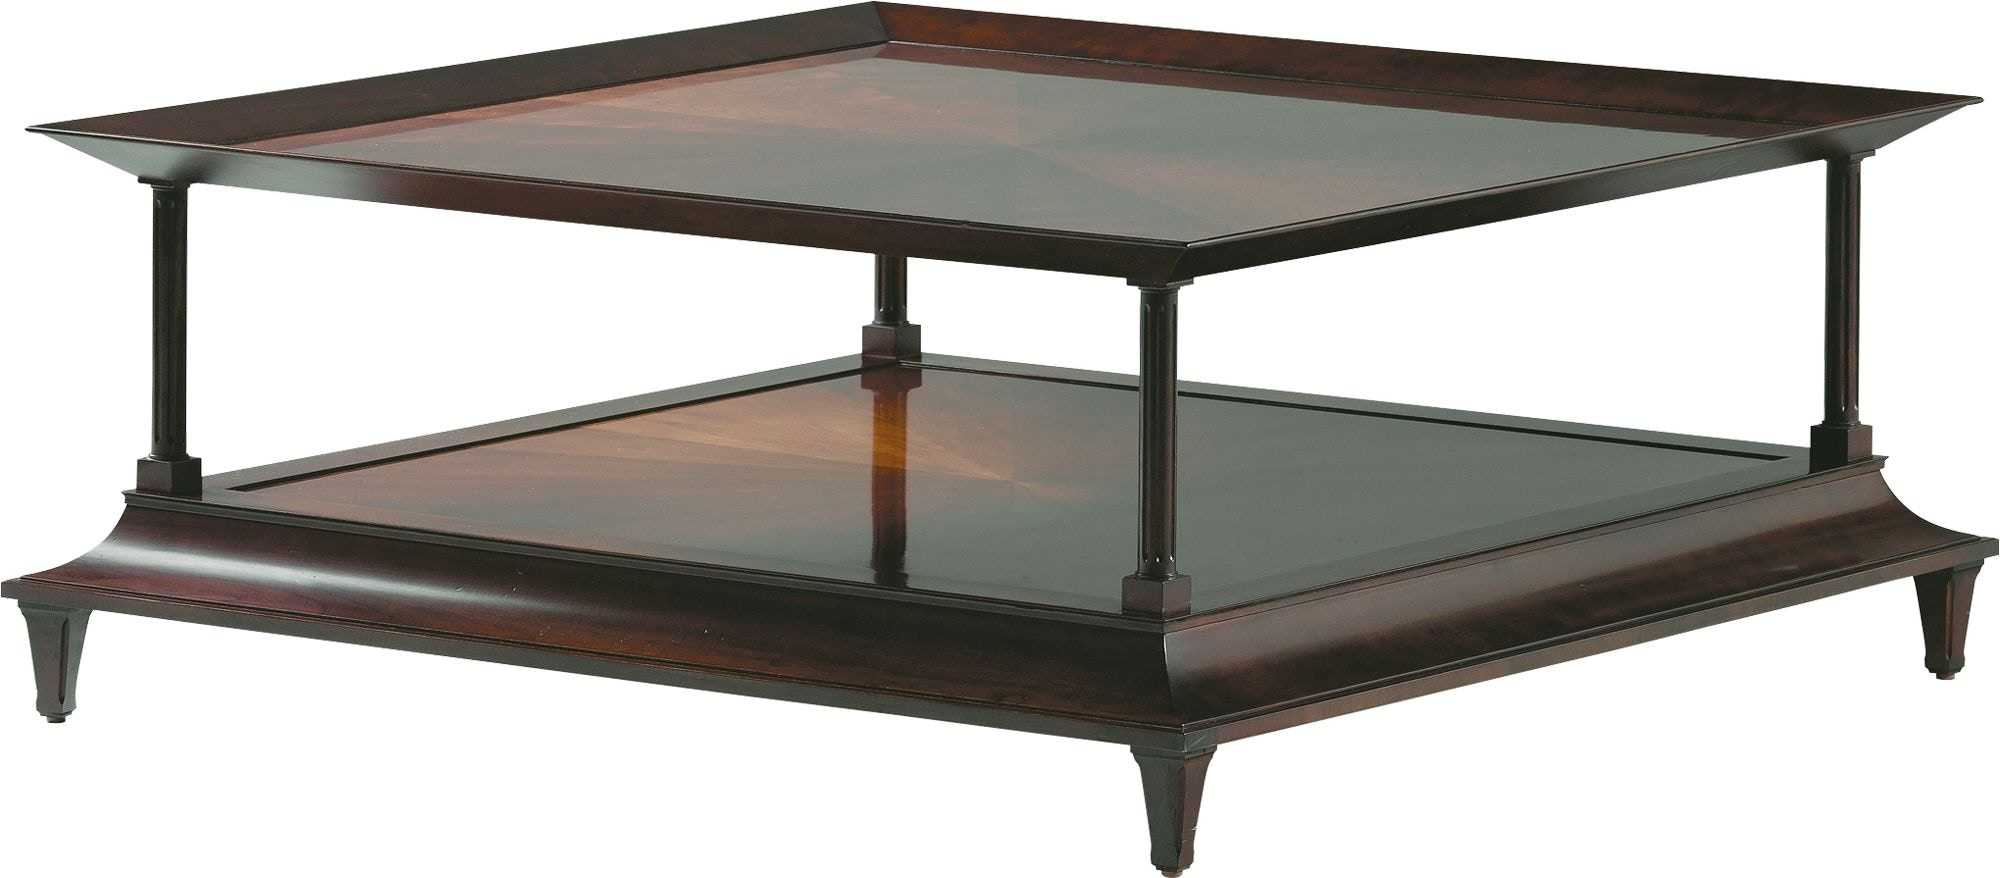 Baker Furniture Jacques Garcia Coffee Table 3752